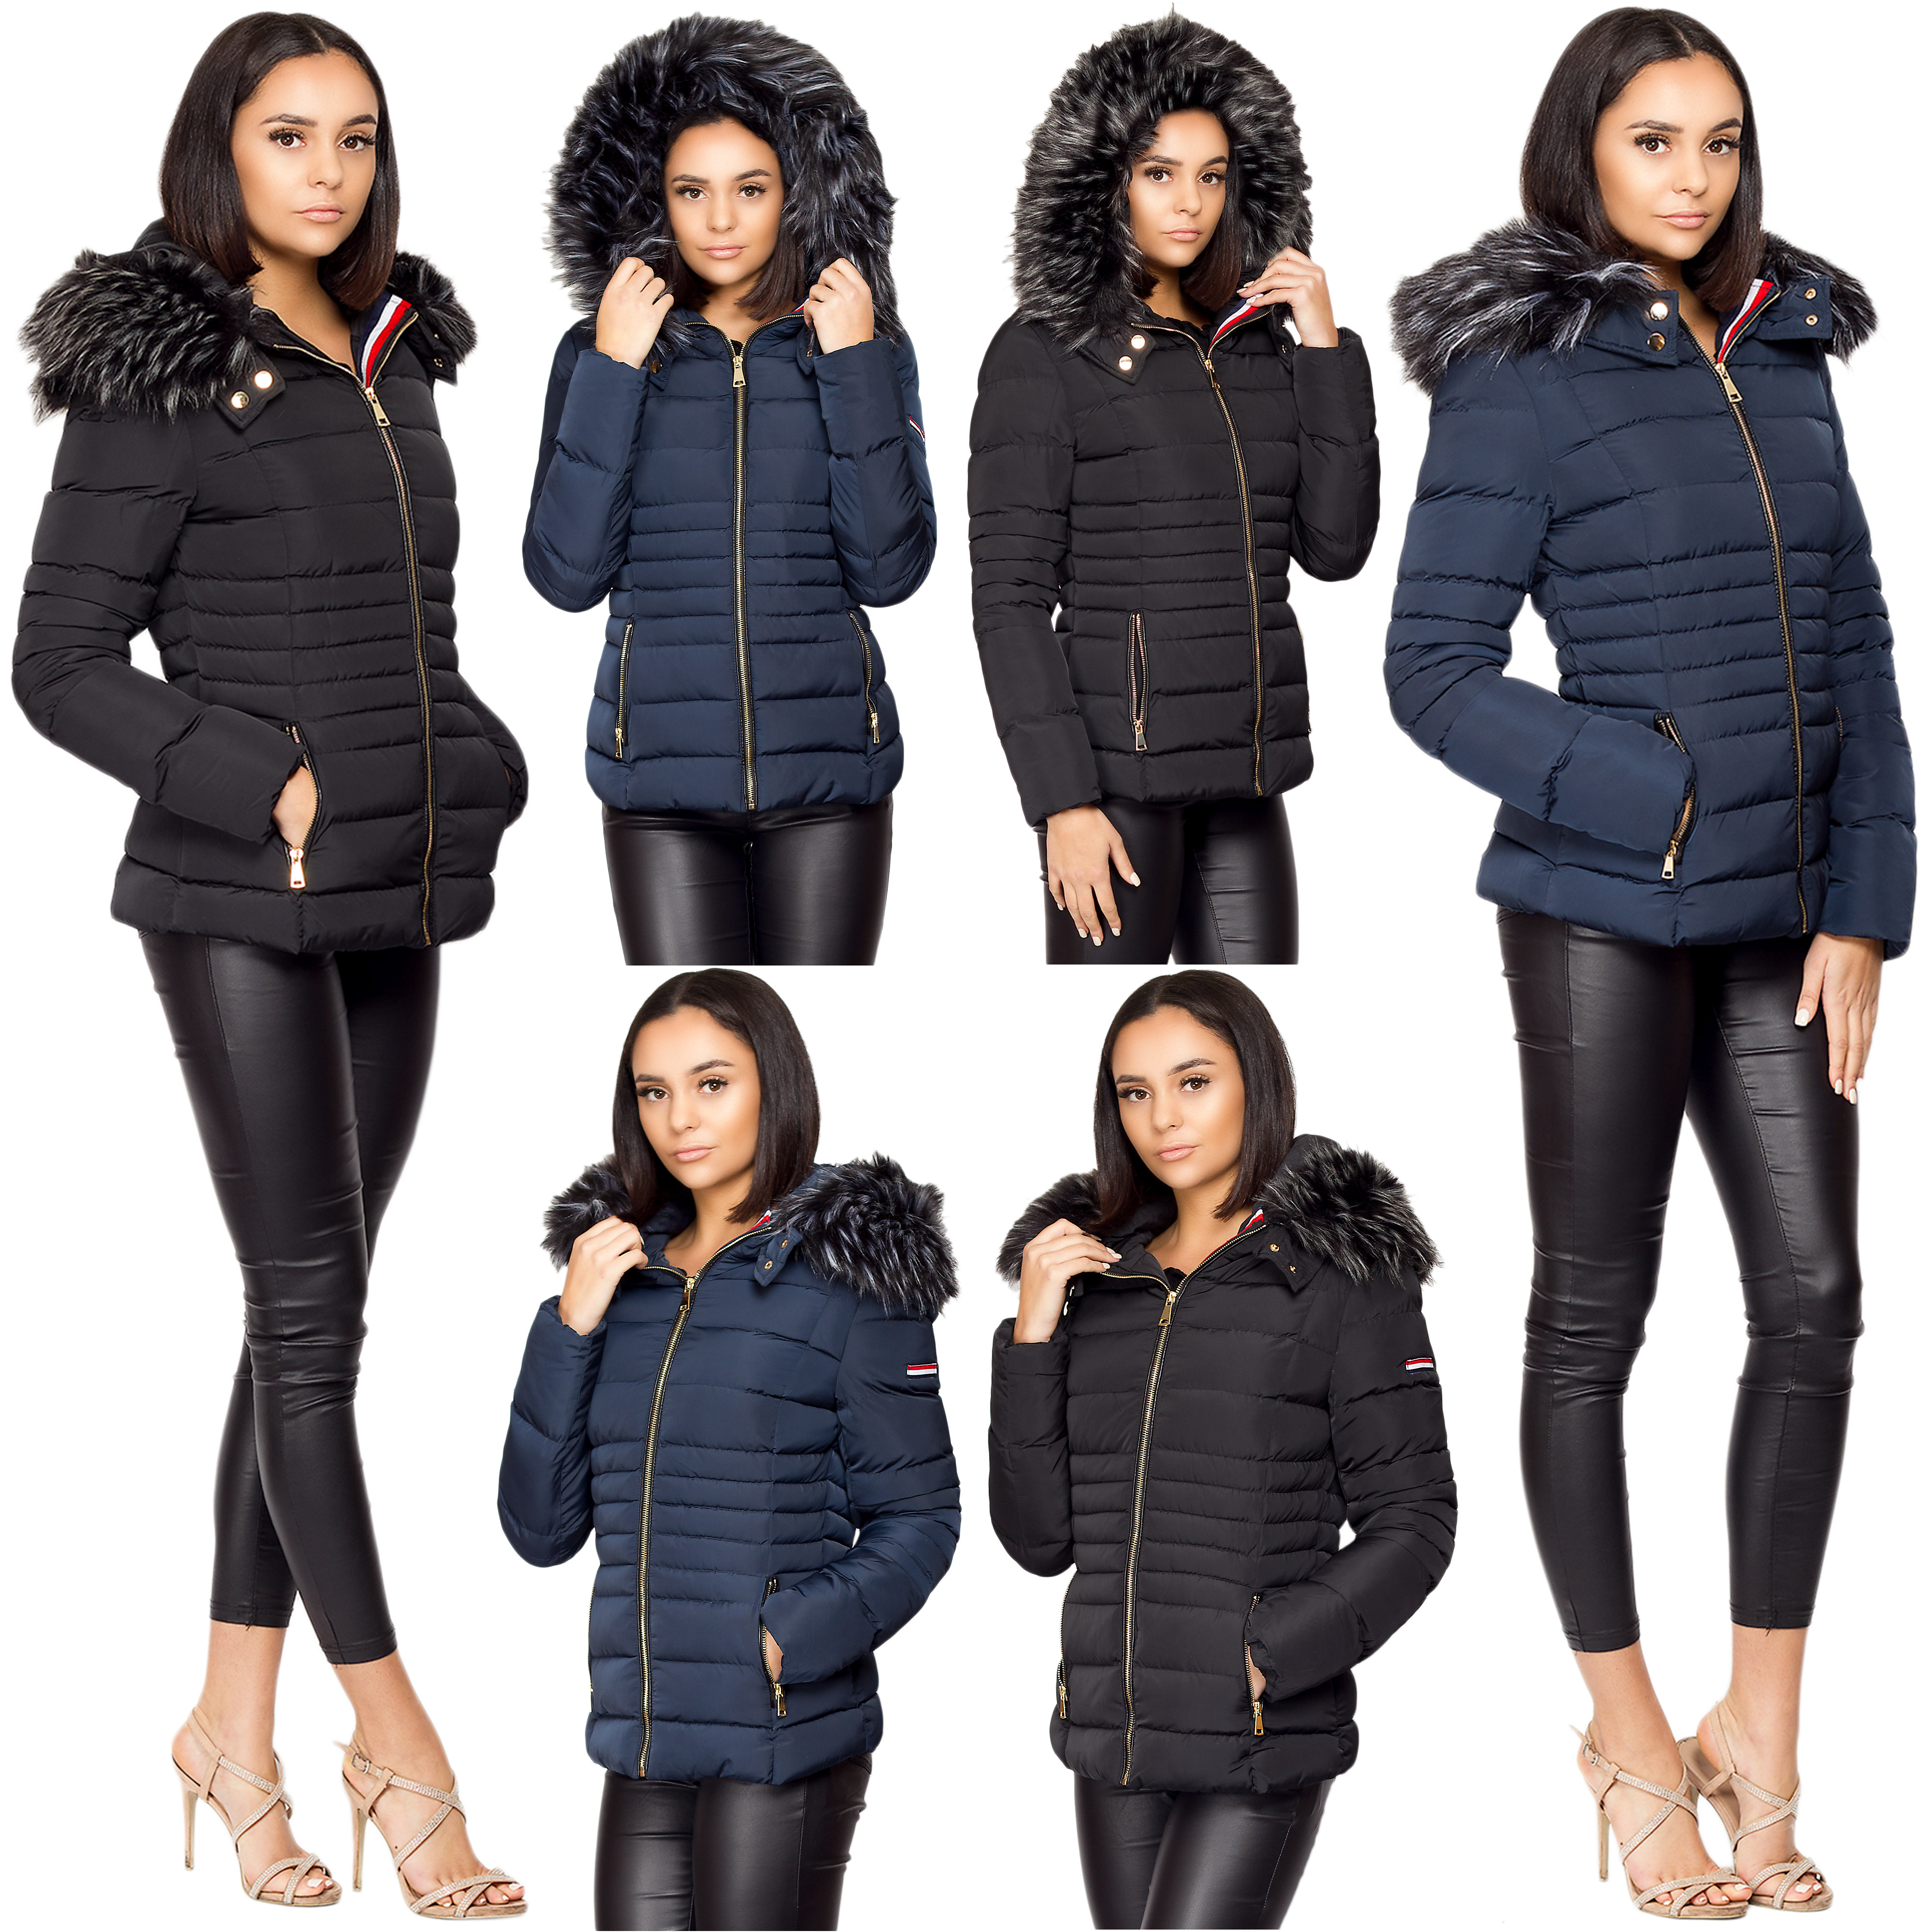 d5843a3d4fc0 Details about Ladies Women Quilted Puffer Bubble Padded Faux Fur Hooded  Warm Thick Coat Jacket